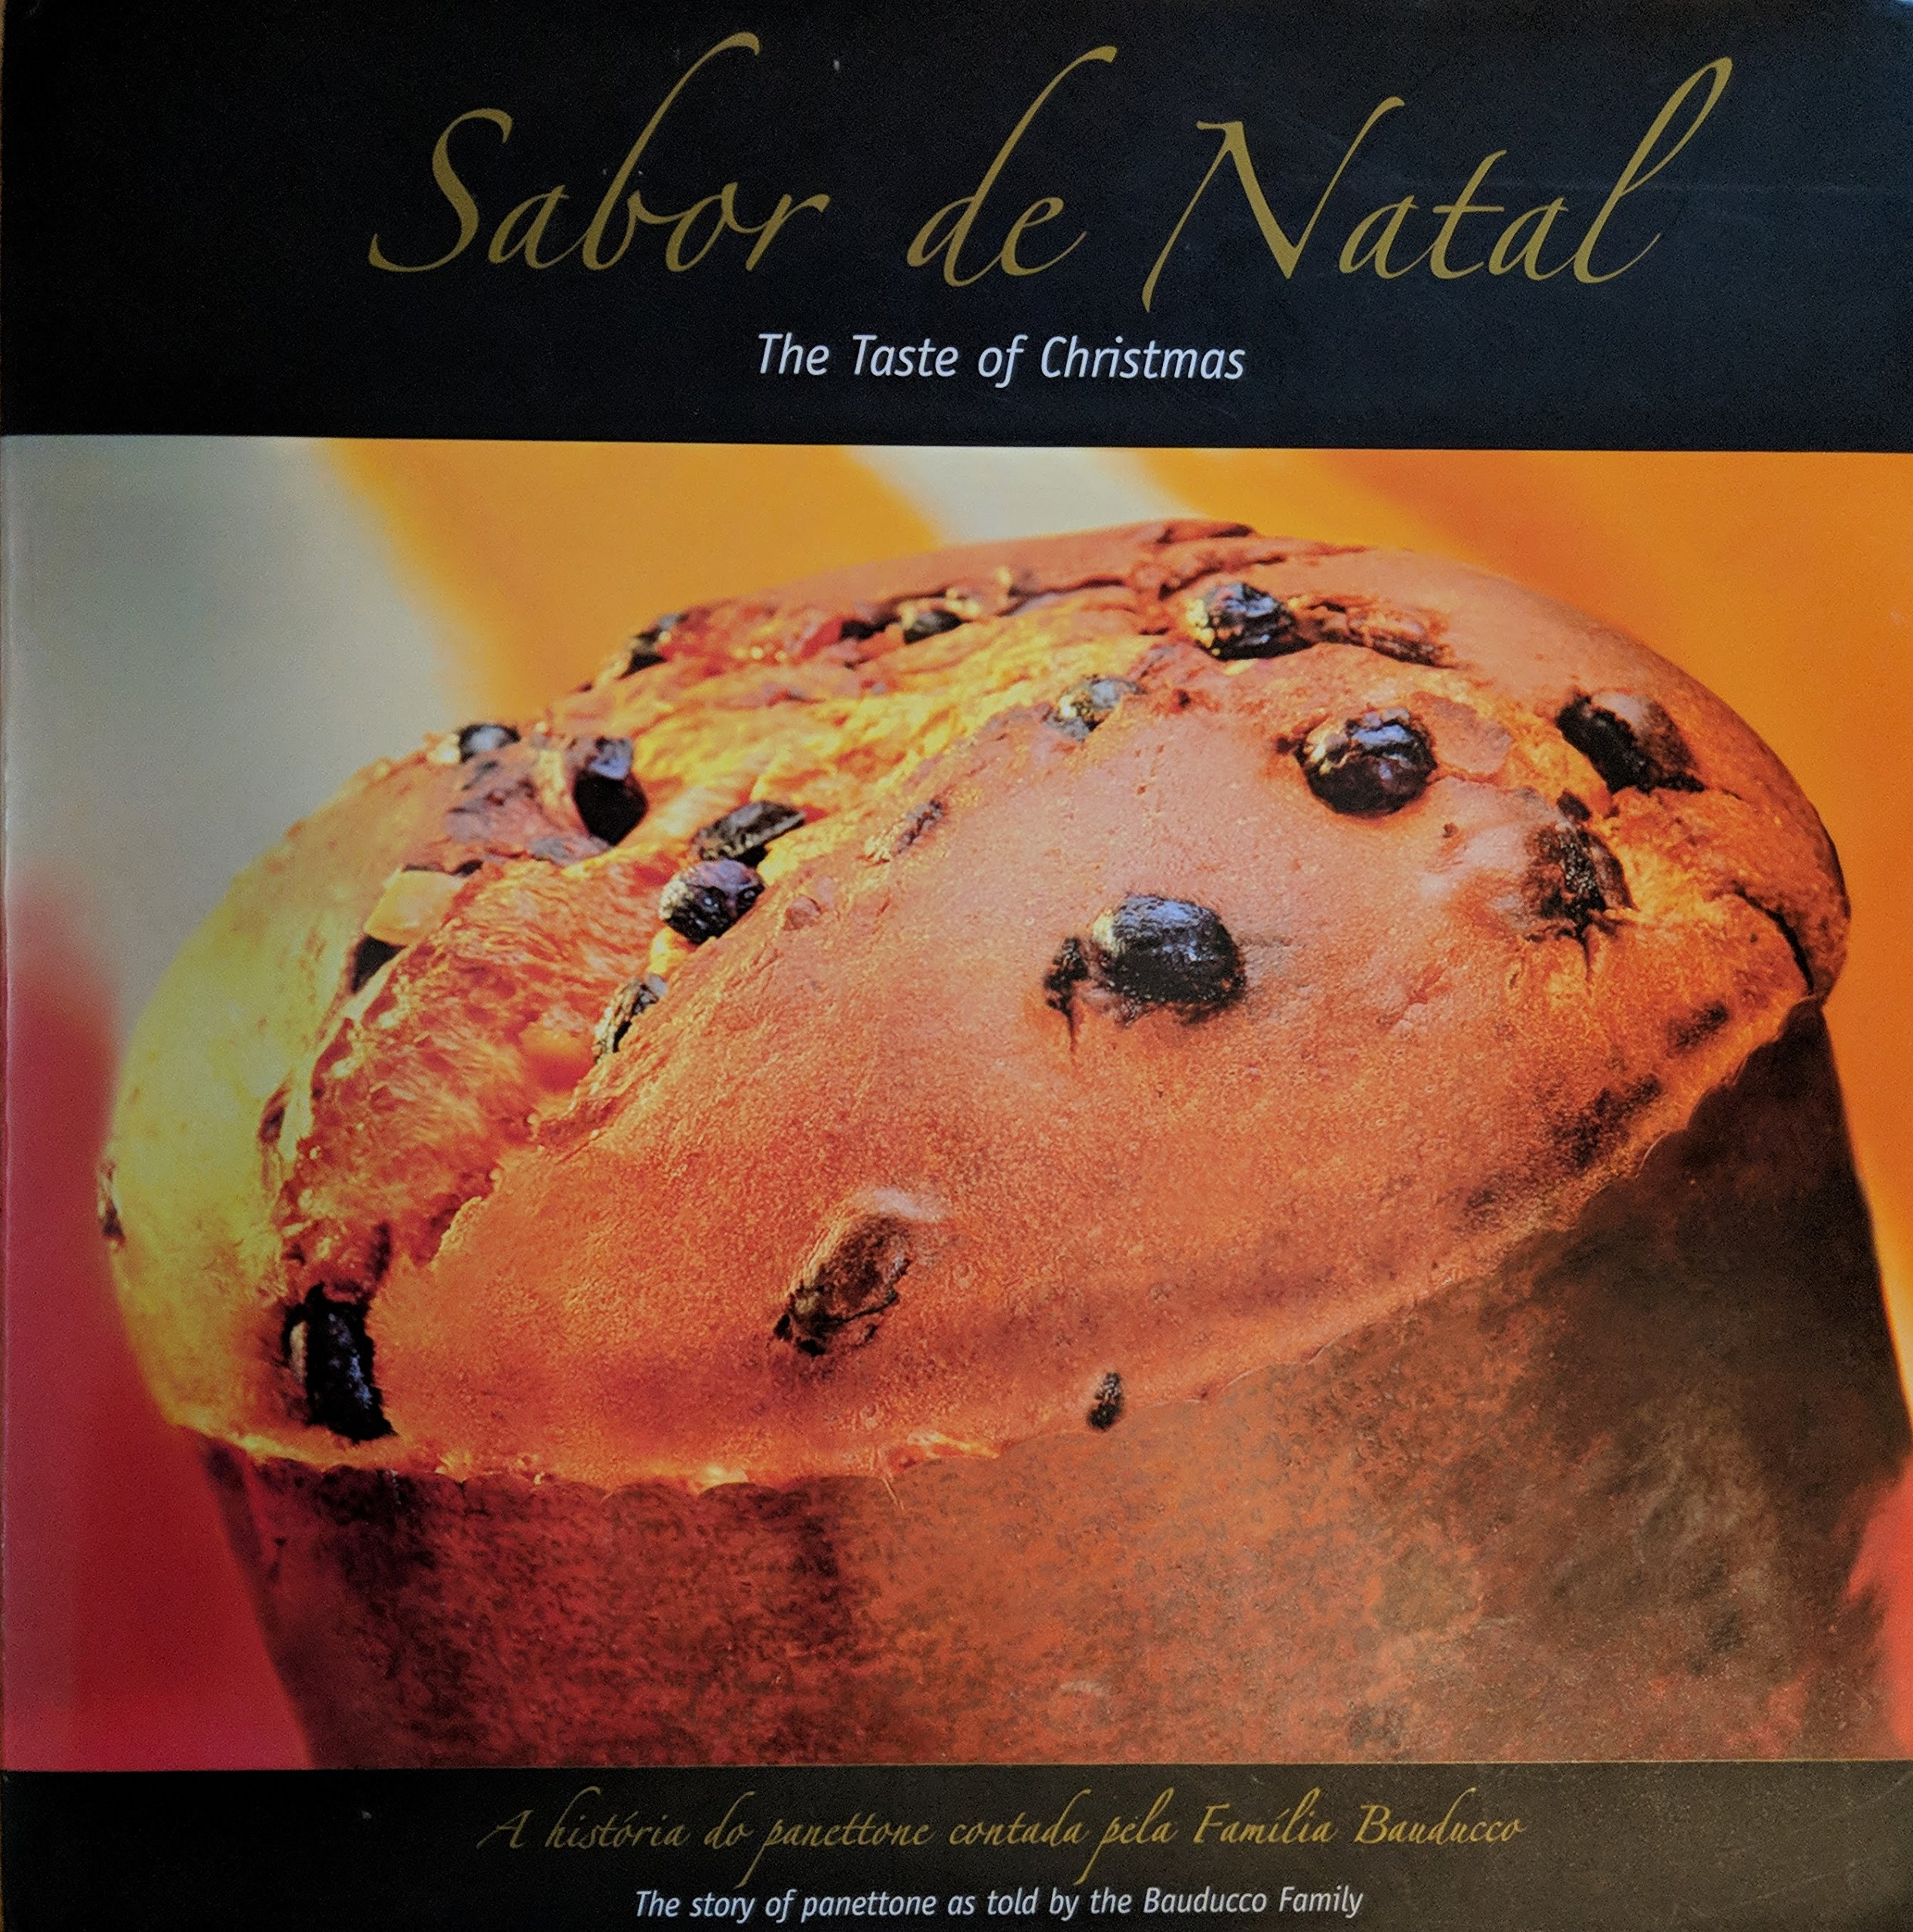 Sabor de Natal (The Taste of Christmas): 9788574195421: Amazon.com: Books